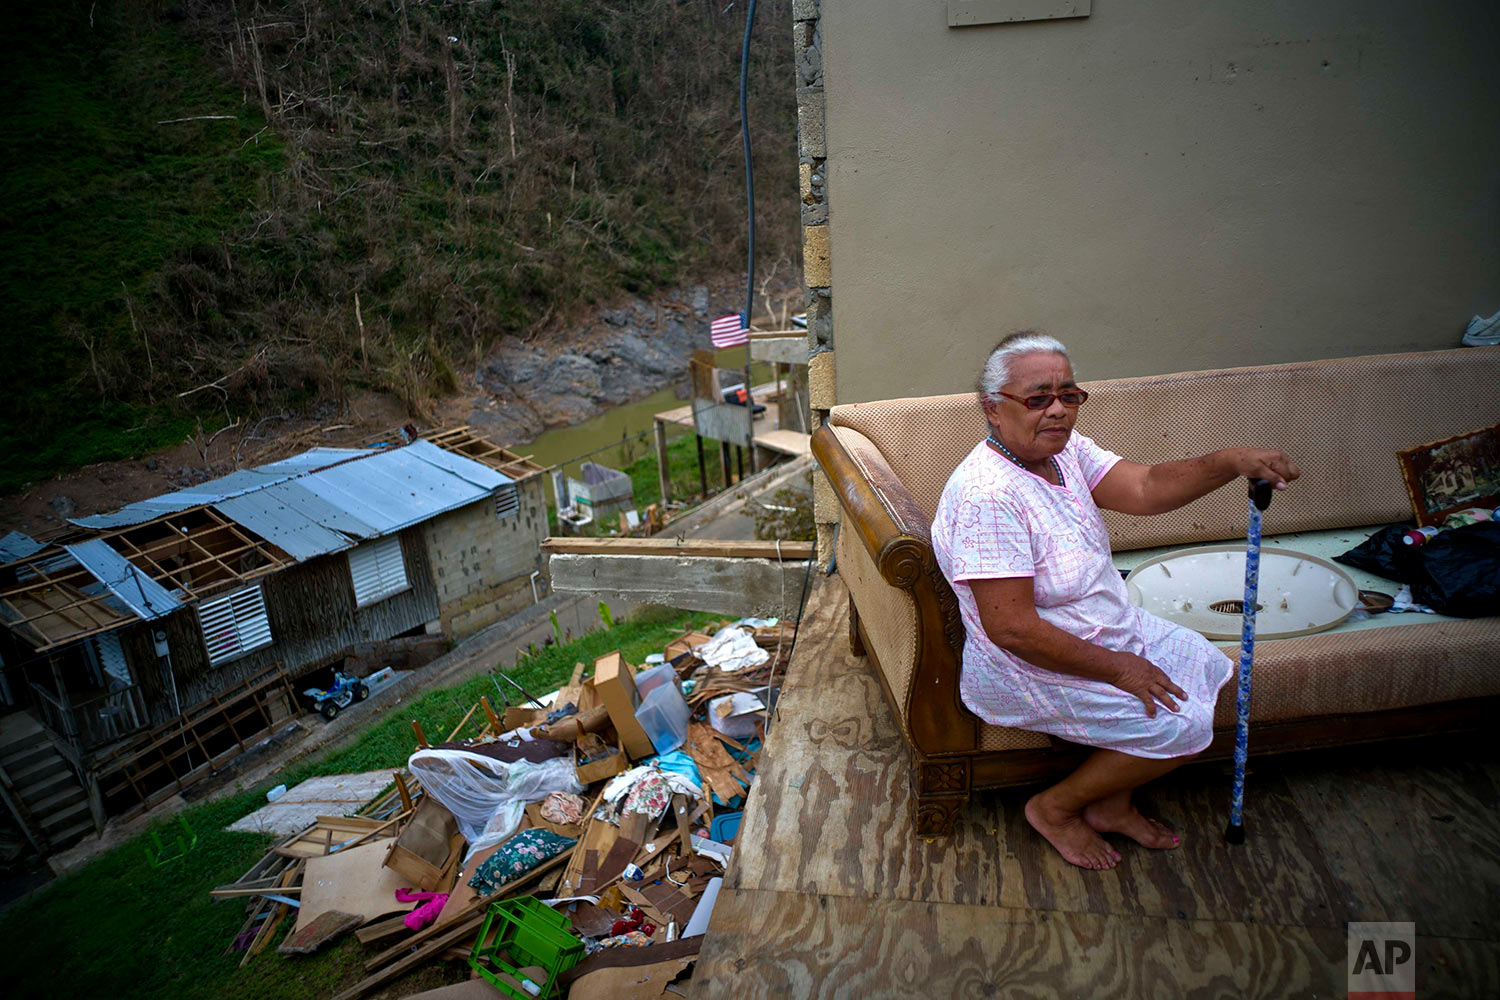 """Juana Sortre Vazquez sits on her soaked couch in what remains of her home, destroyed by Hurricane Maria in the San Lorenza neighborhood of Morovis, Puerto Rico, Saturday, Sept. 30, 2017. """"The night of the hurricane I spent the night at a niece's house. I did not come back for the next nine days because the roads where out. When I made it home I saw that is was all gone. This is a disaster,"""" reflected Vazquez. (AP Photo/Ramon Espinosa)"""